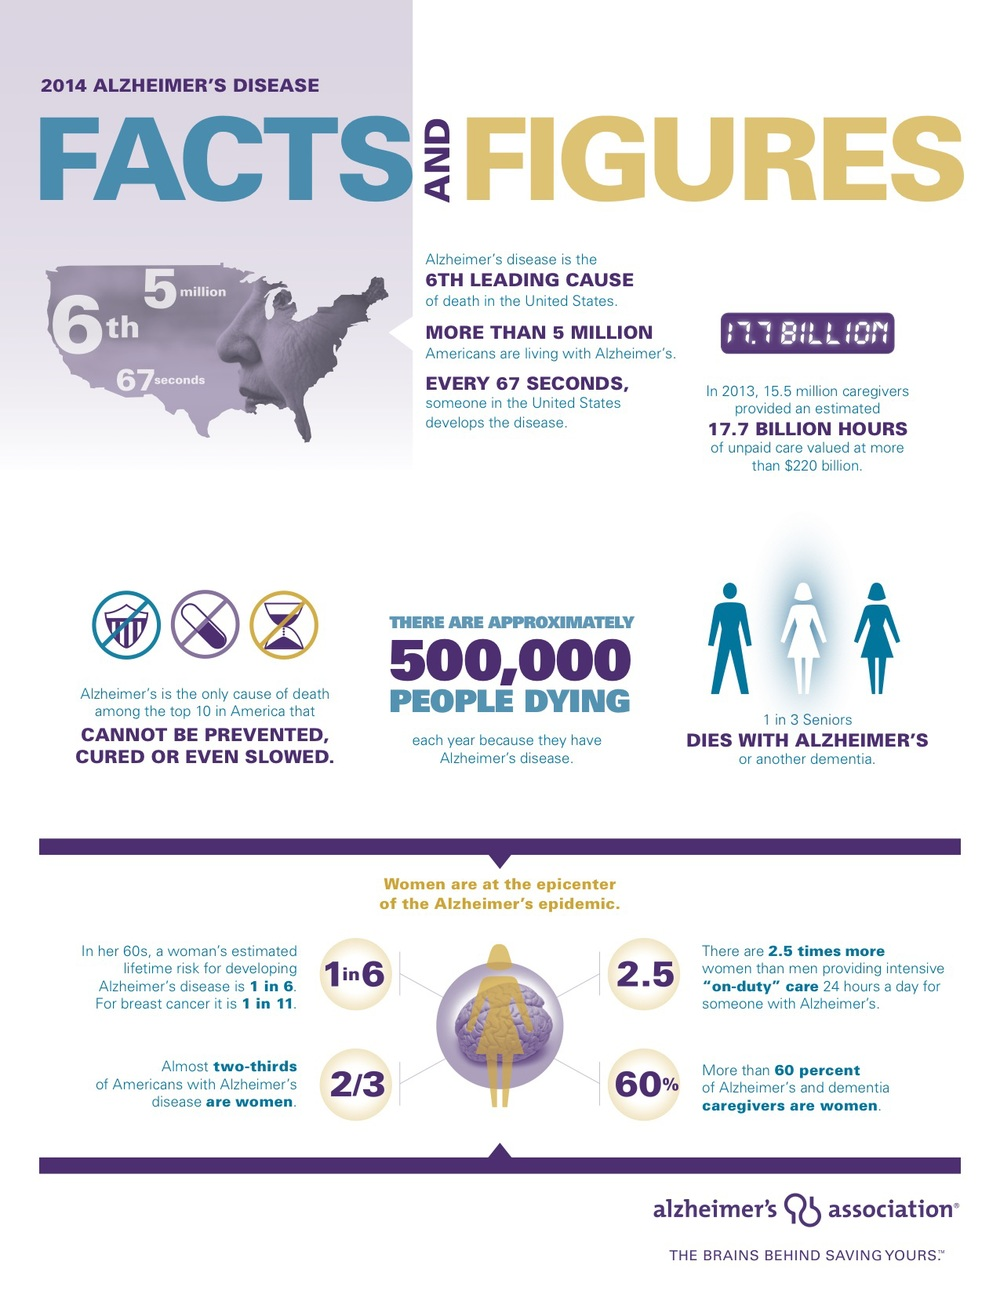 2014 Facts and Figures from the Alzheimer's Association.